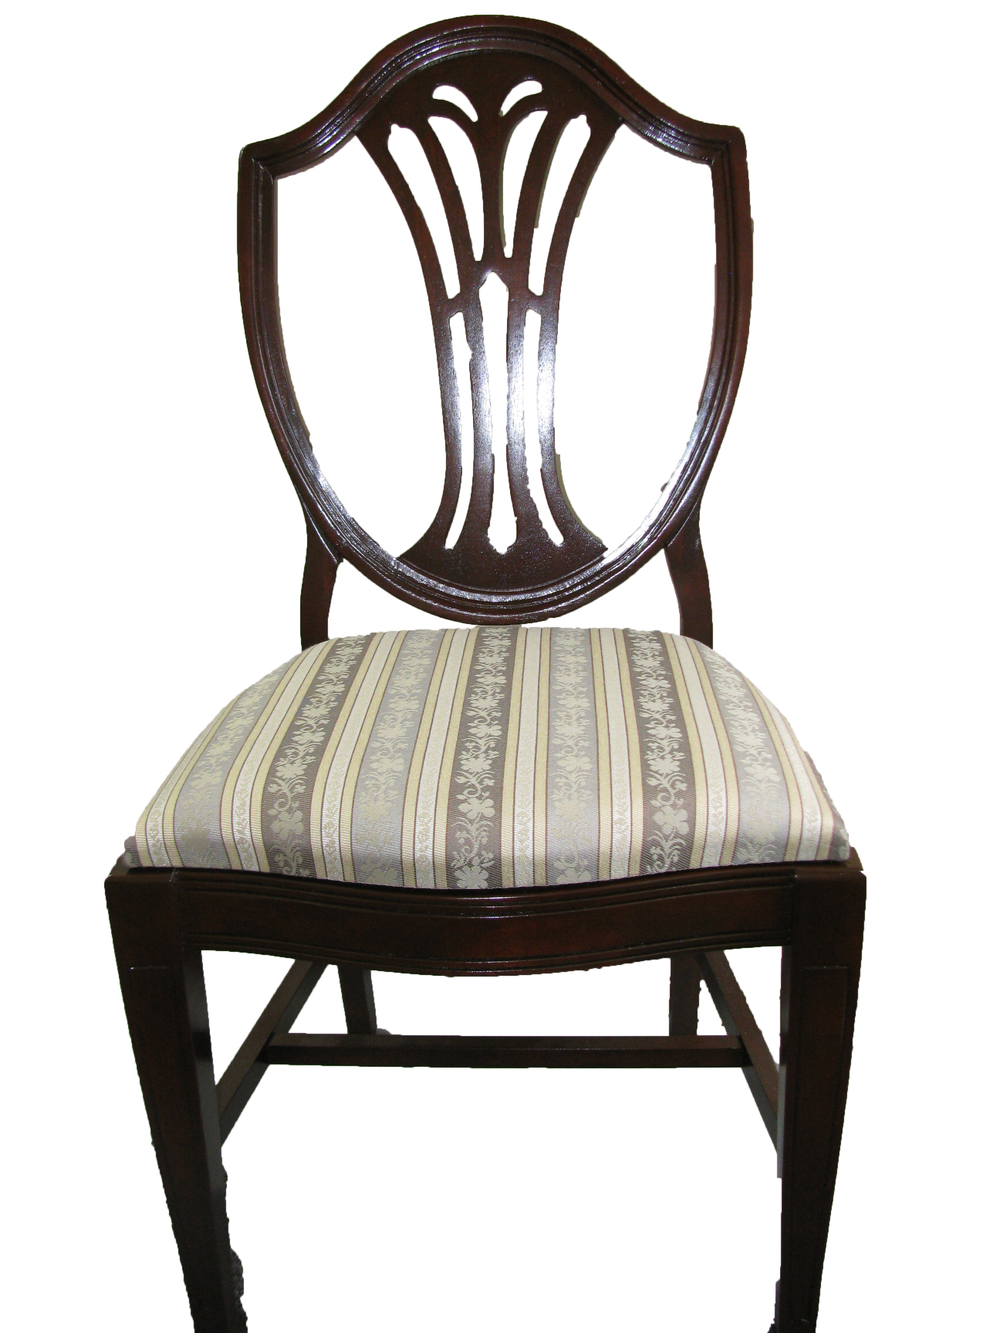 rembourrage-larrivee-chaise-antique.jpg